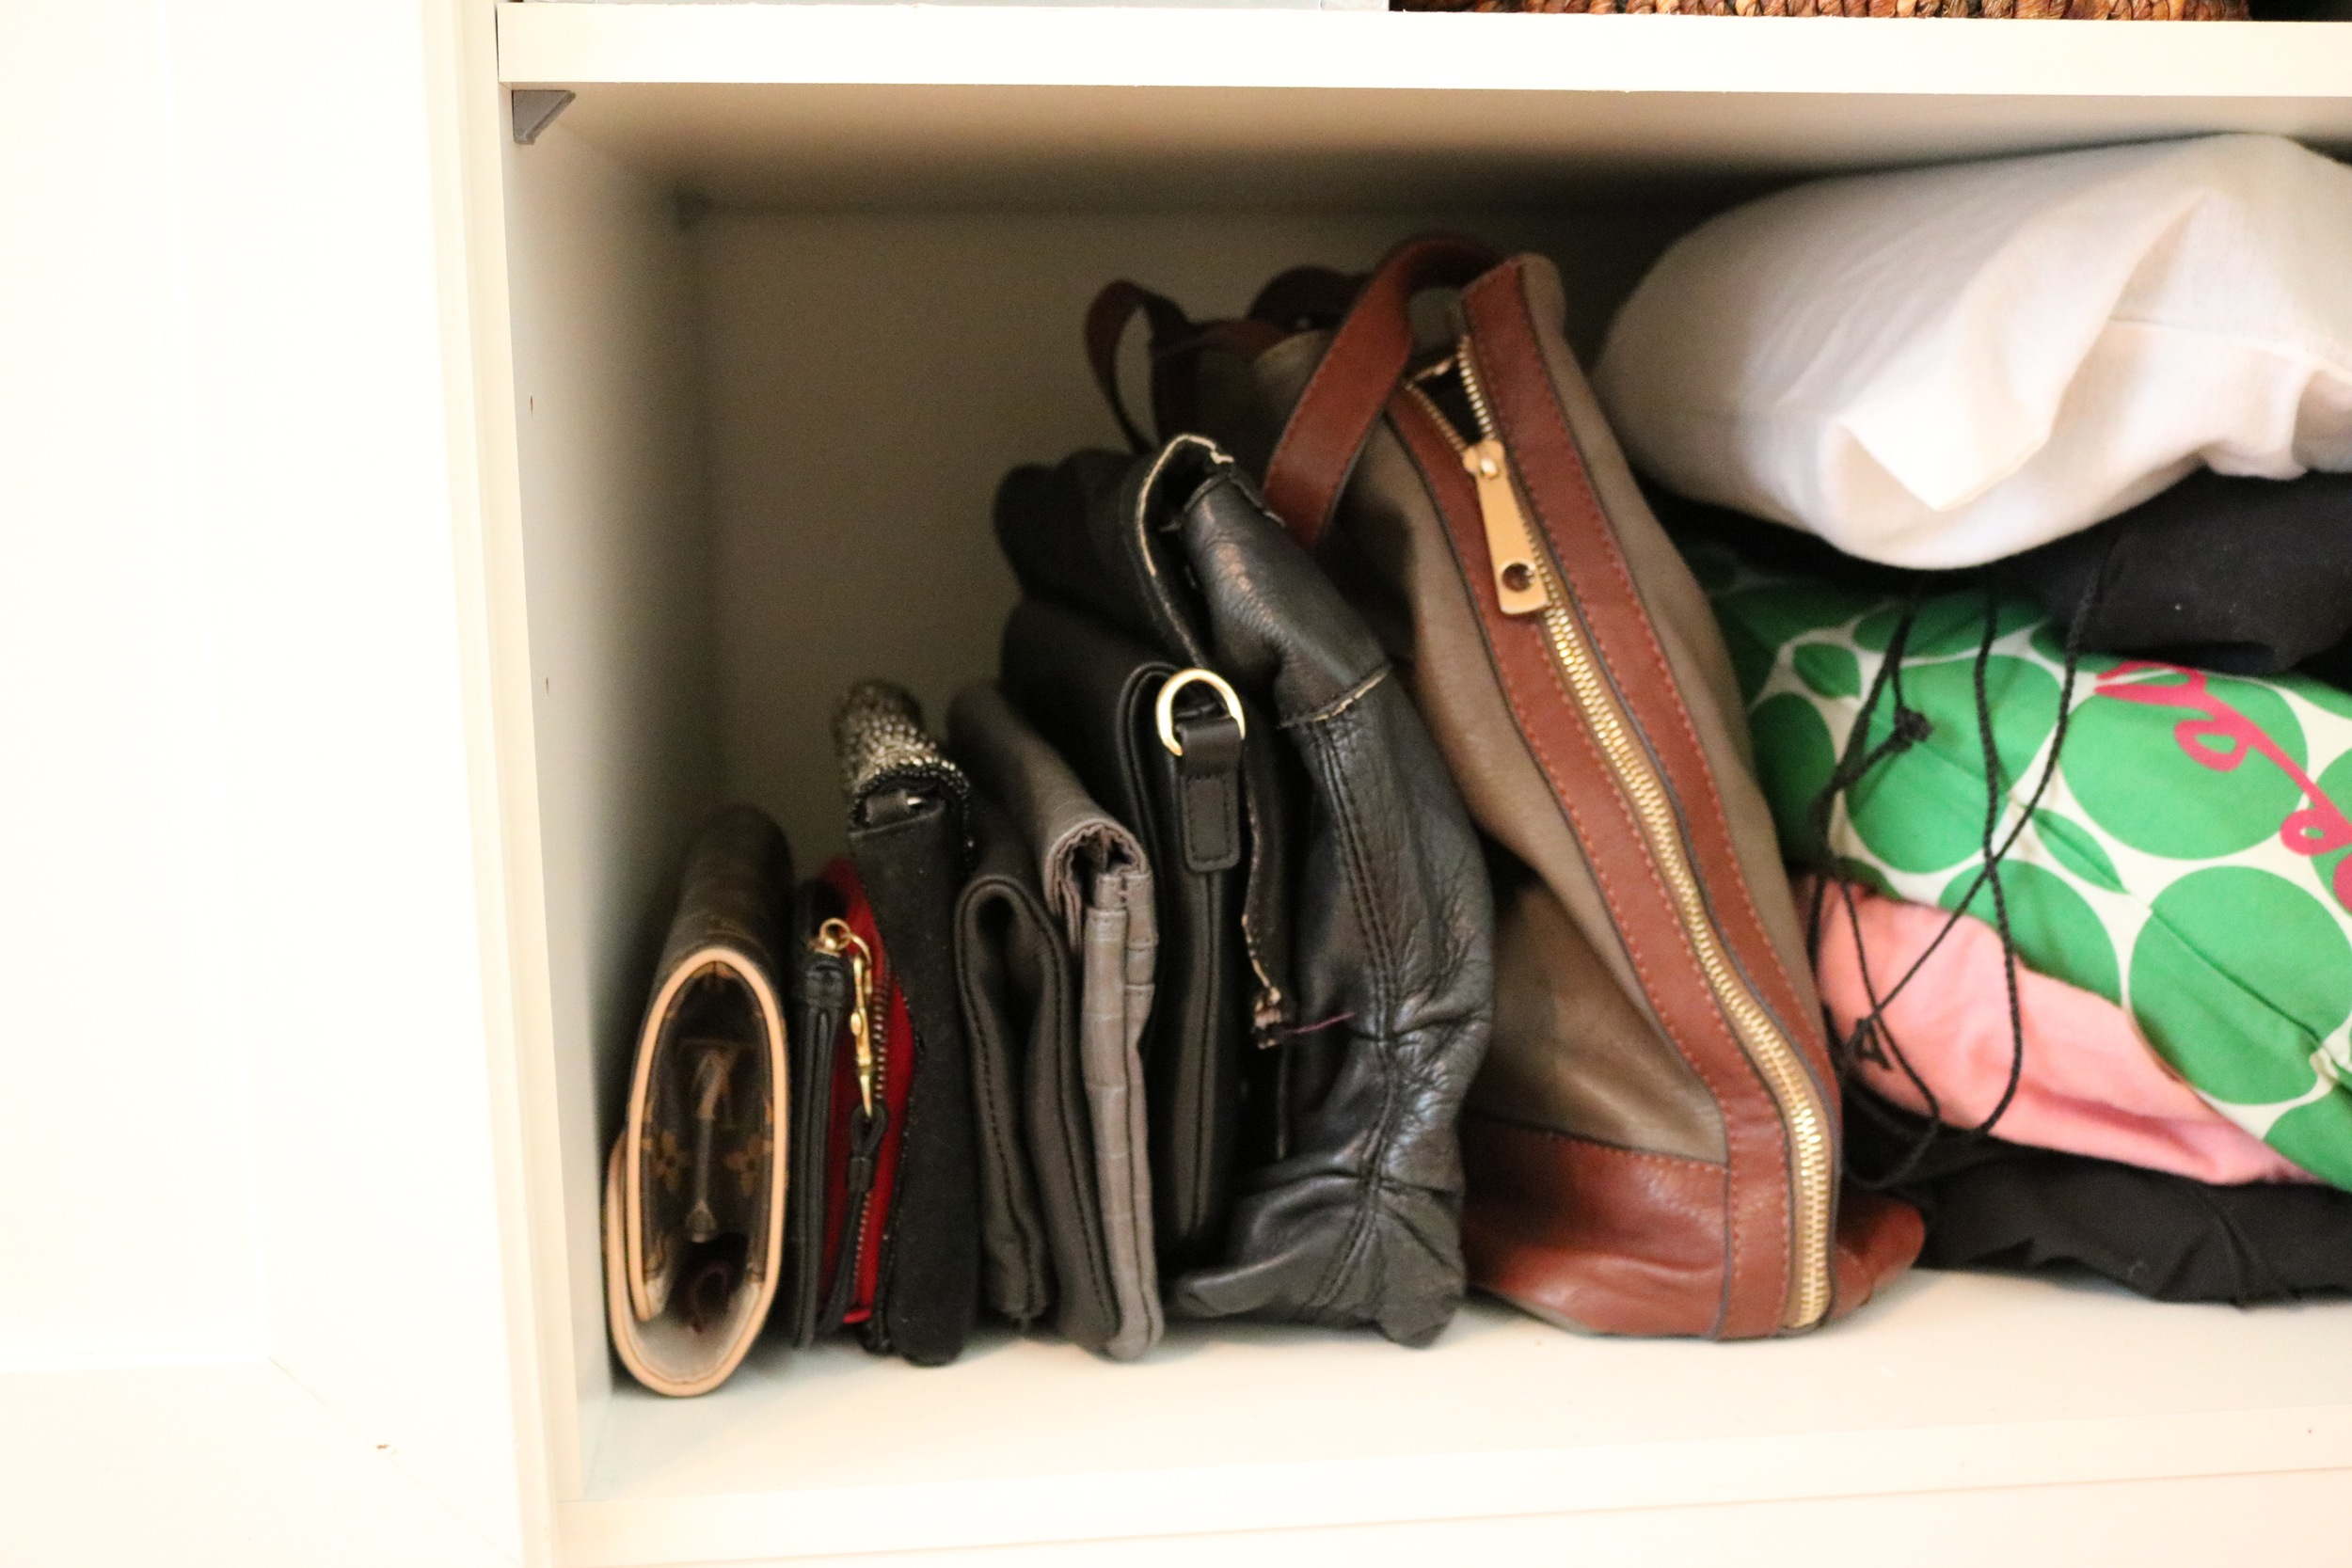 Handbags and clutches are stacked so I can easily identify each one in profile (or by its protective dust cover).